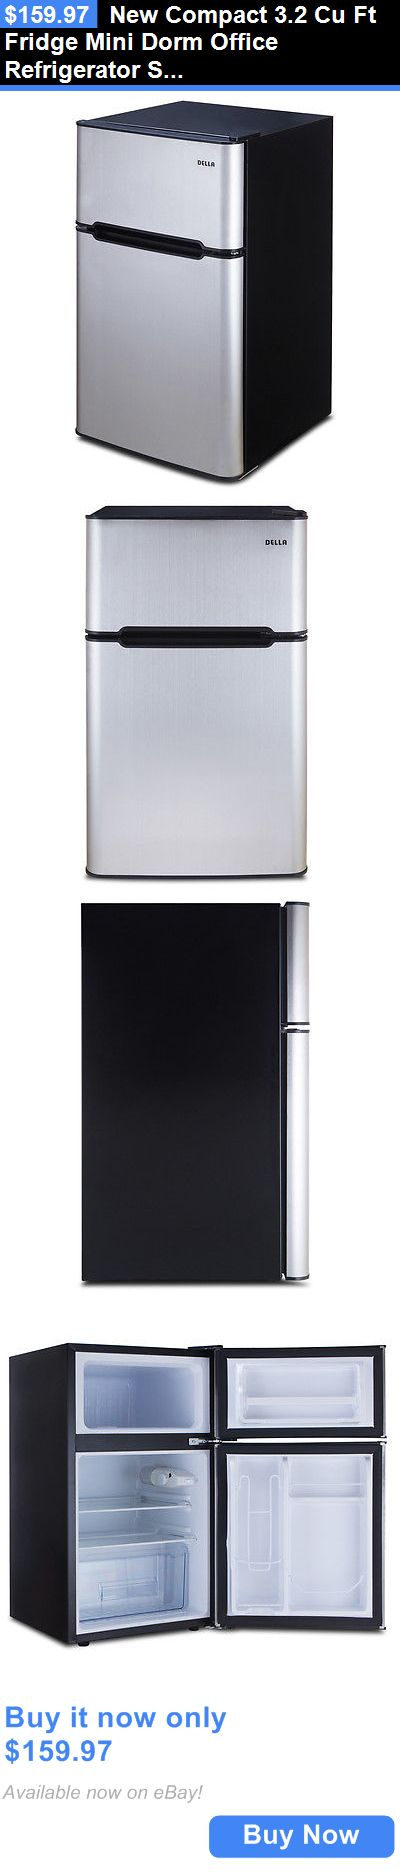 appliances: New Compact 3.2 Cu Ft Fridge Mini Dorm Office Refrigerator Small Freezer Cooler BUY IT NOW ONLY: $159.97